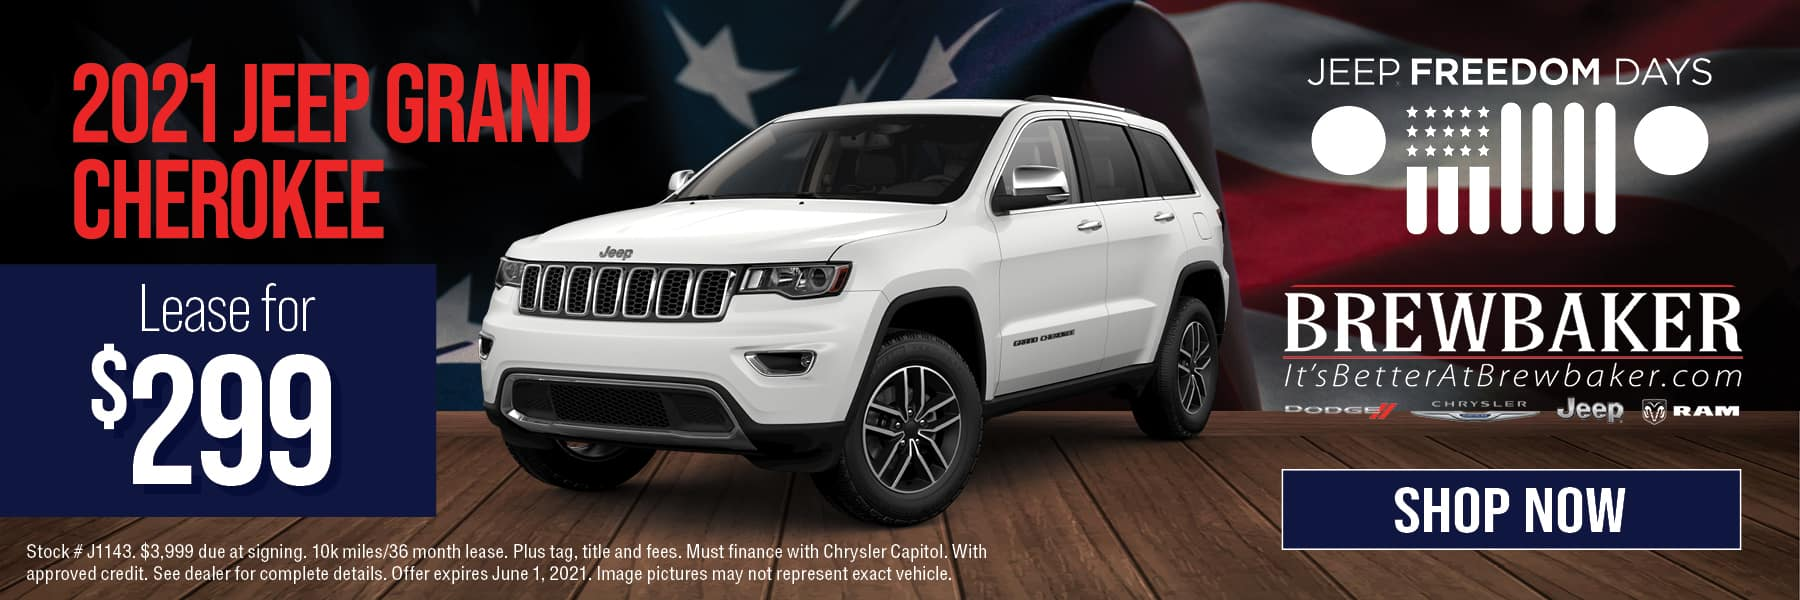 Jeep_GrandCherokee_May_1800x600